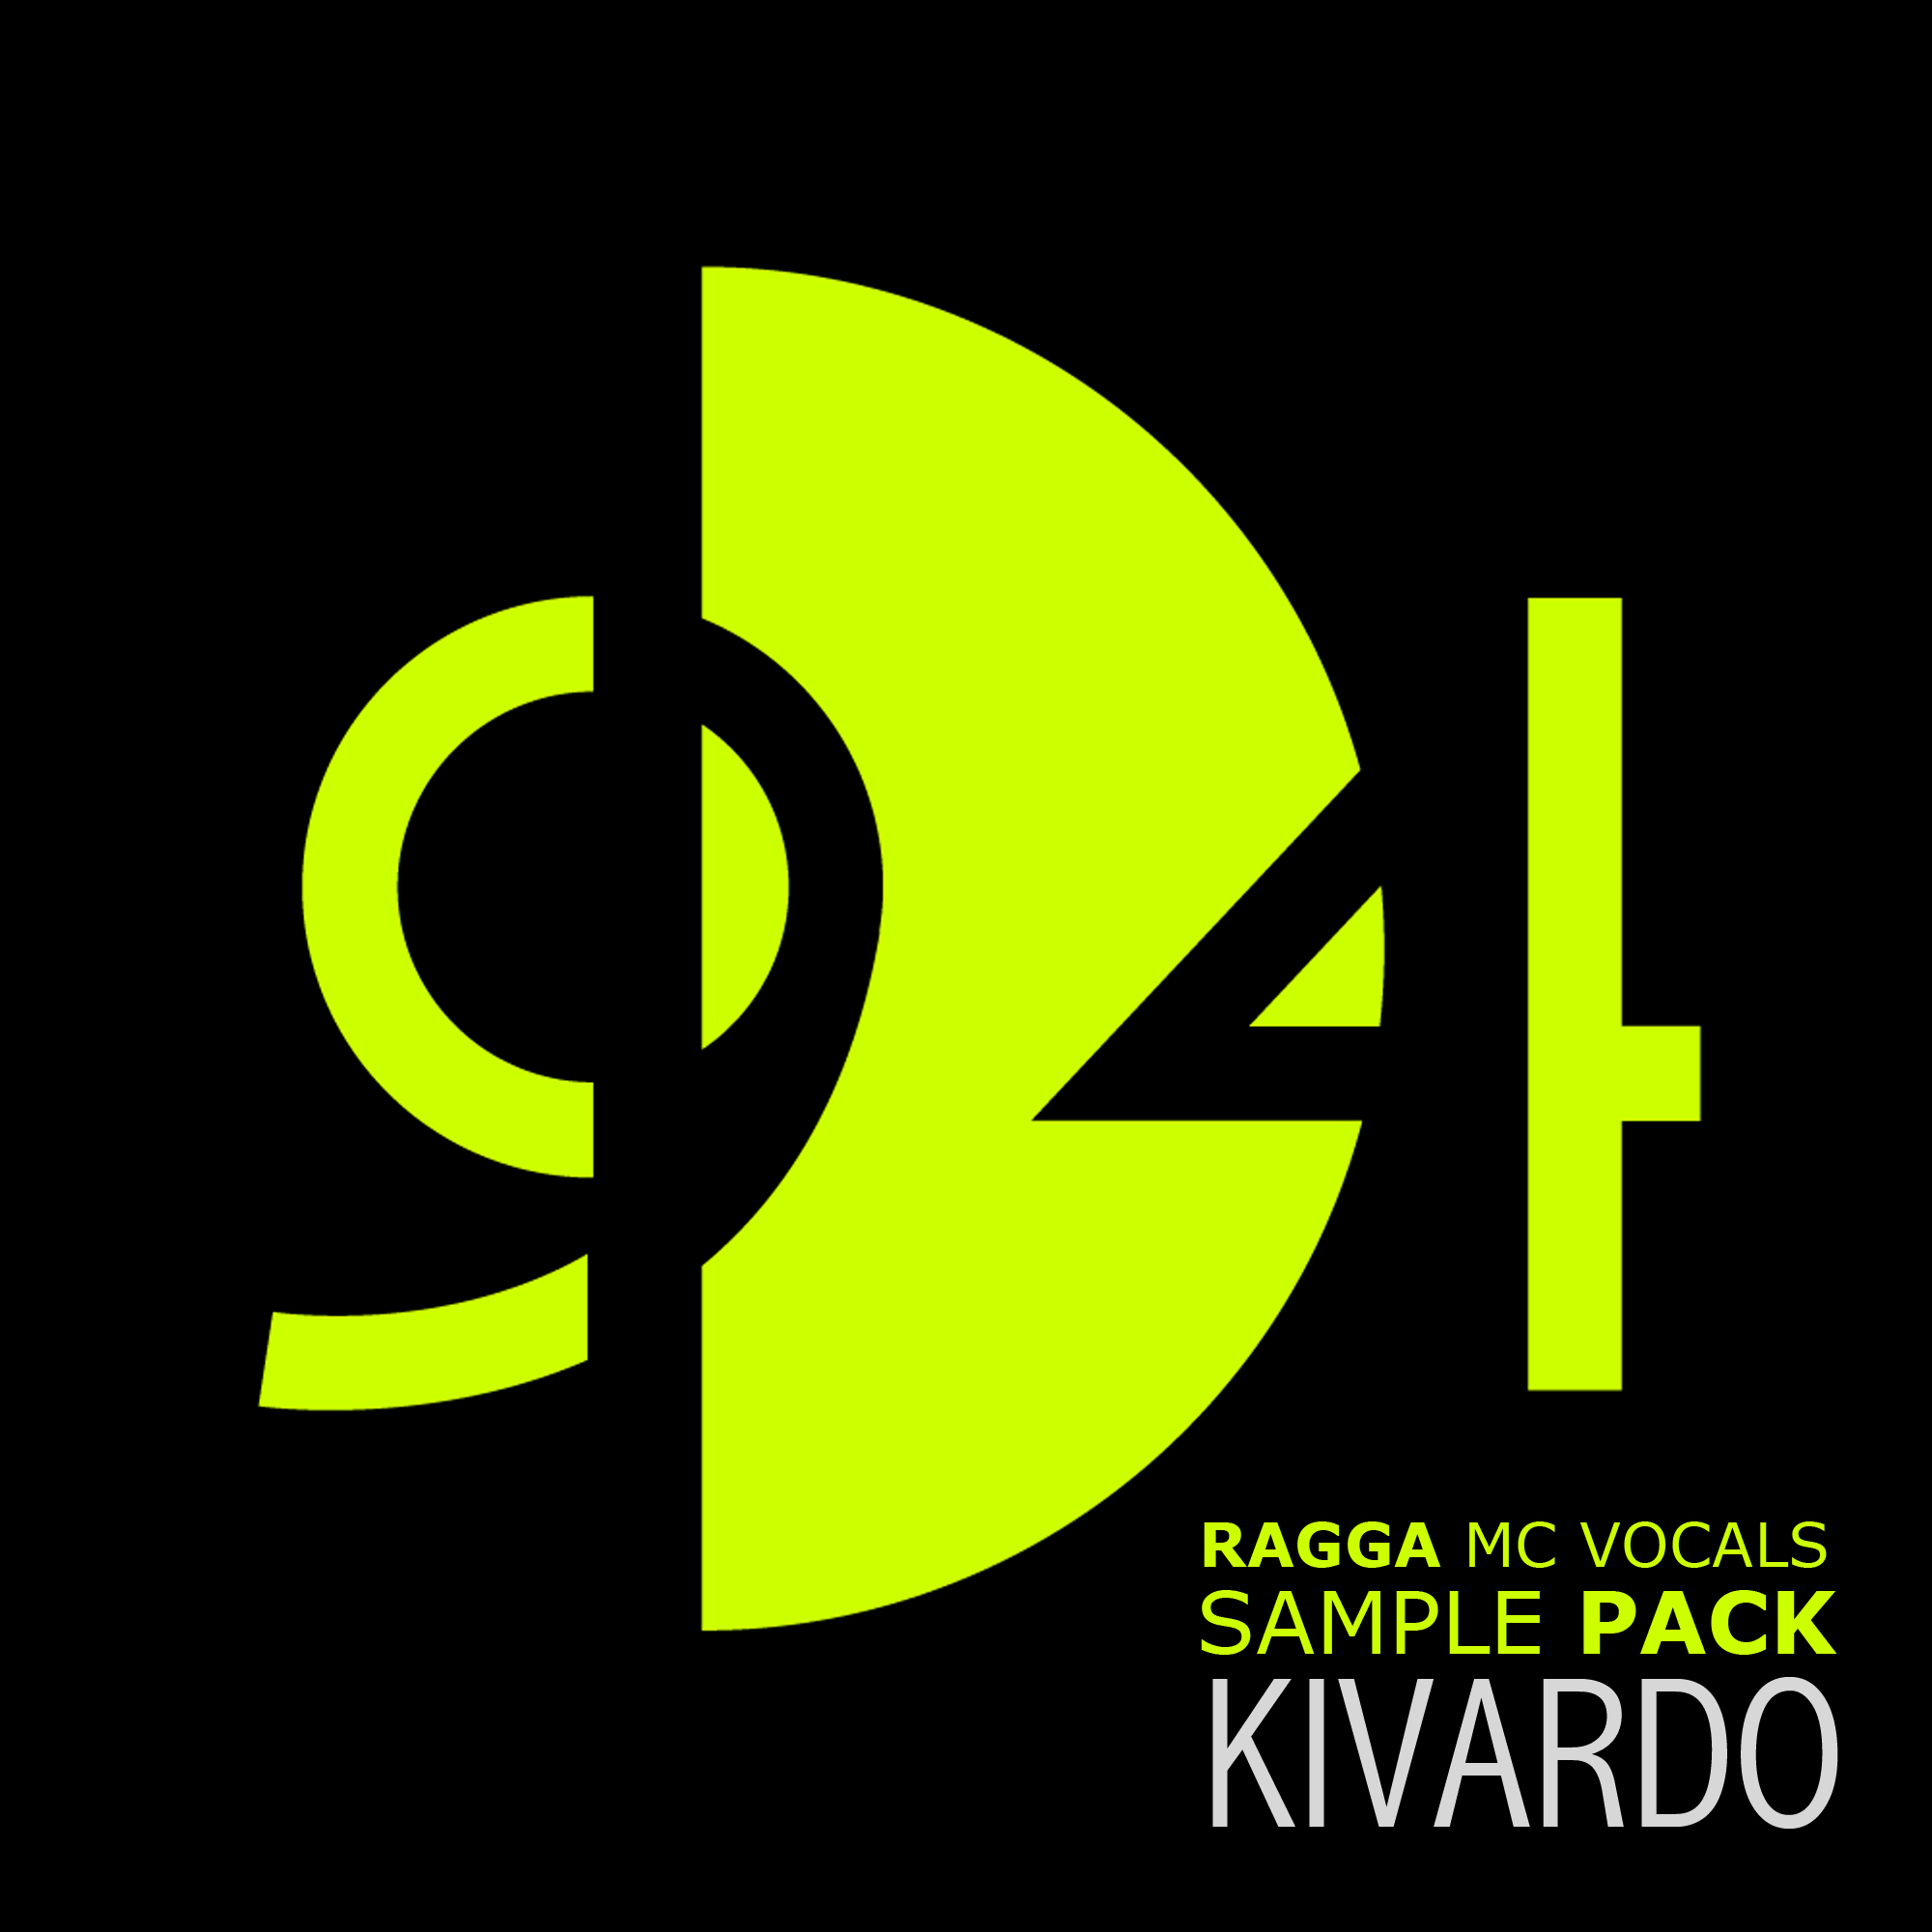 9D4_RAGGA_MC_VOCALS_KIVARDO_2000X2000